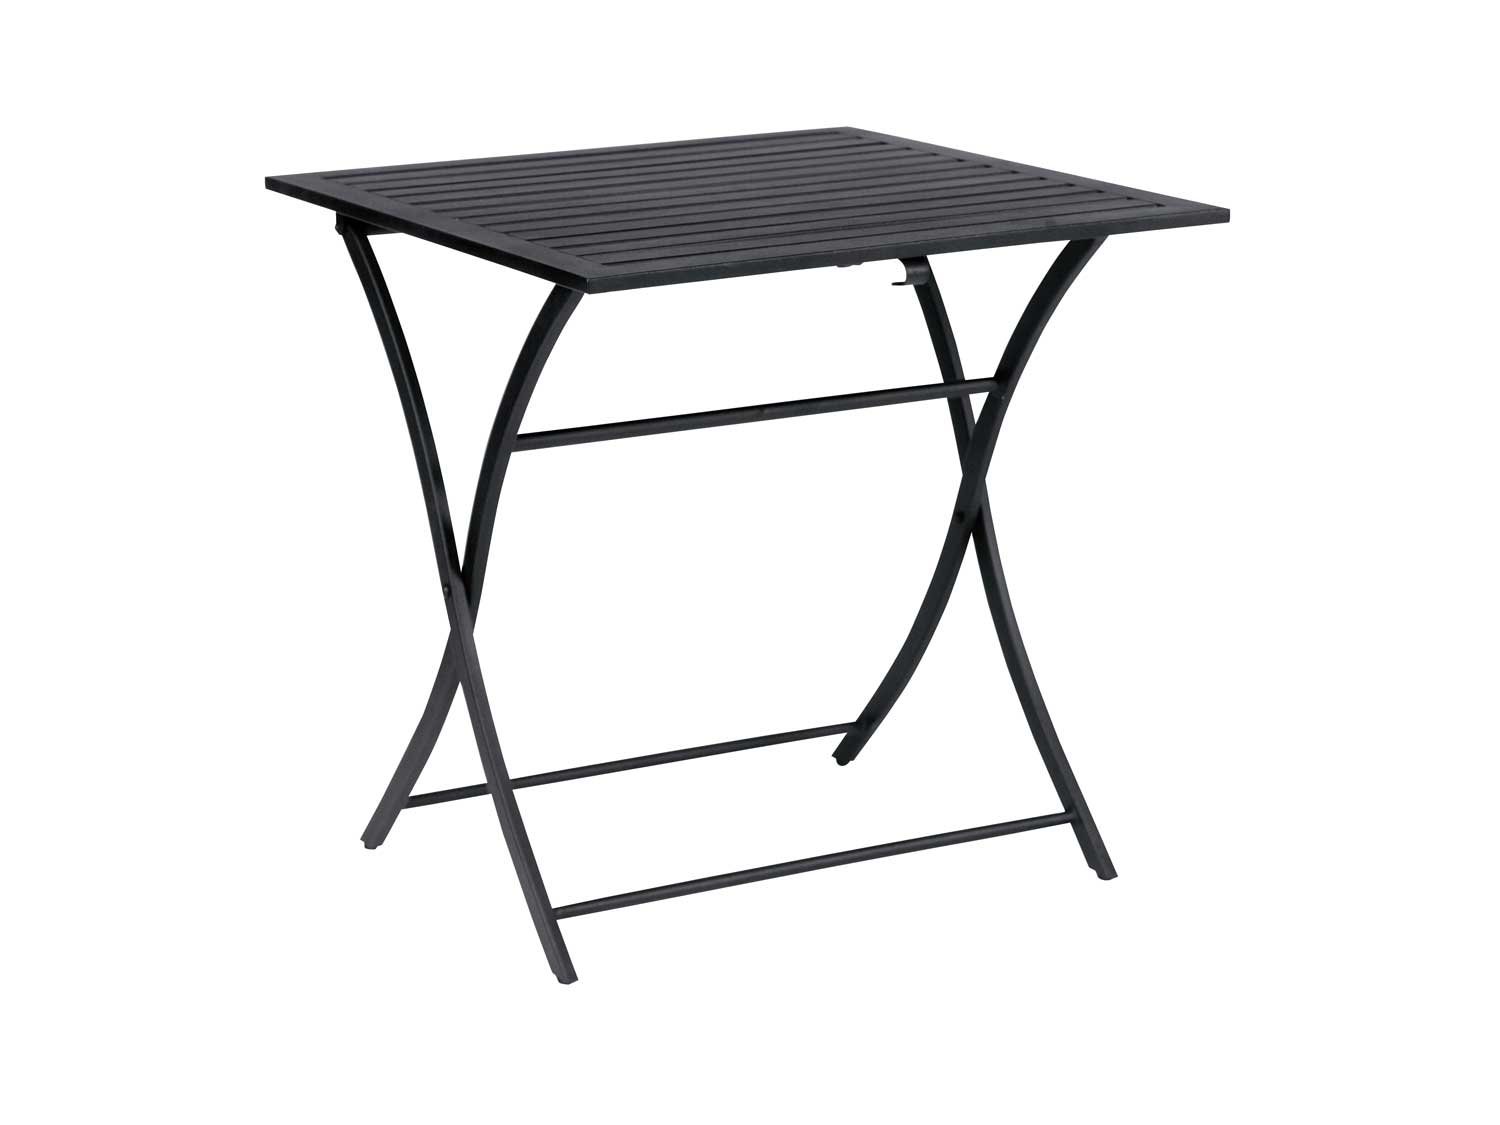 Wrought Iron Black Folding Square Table